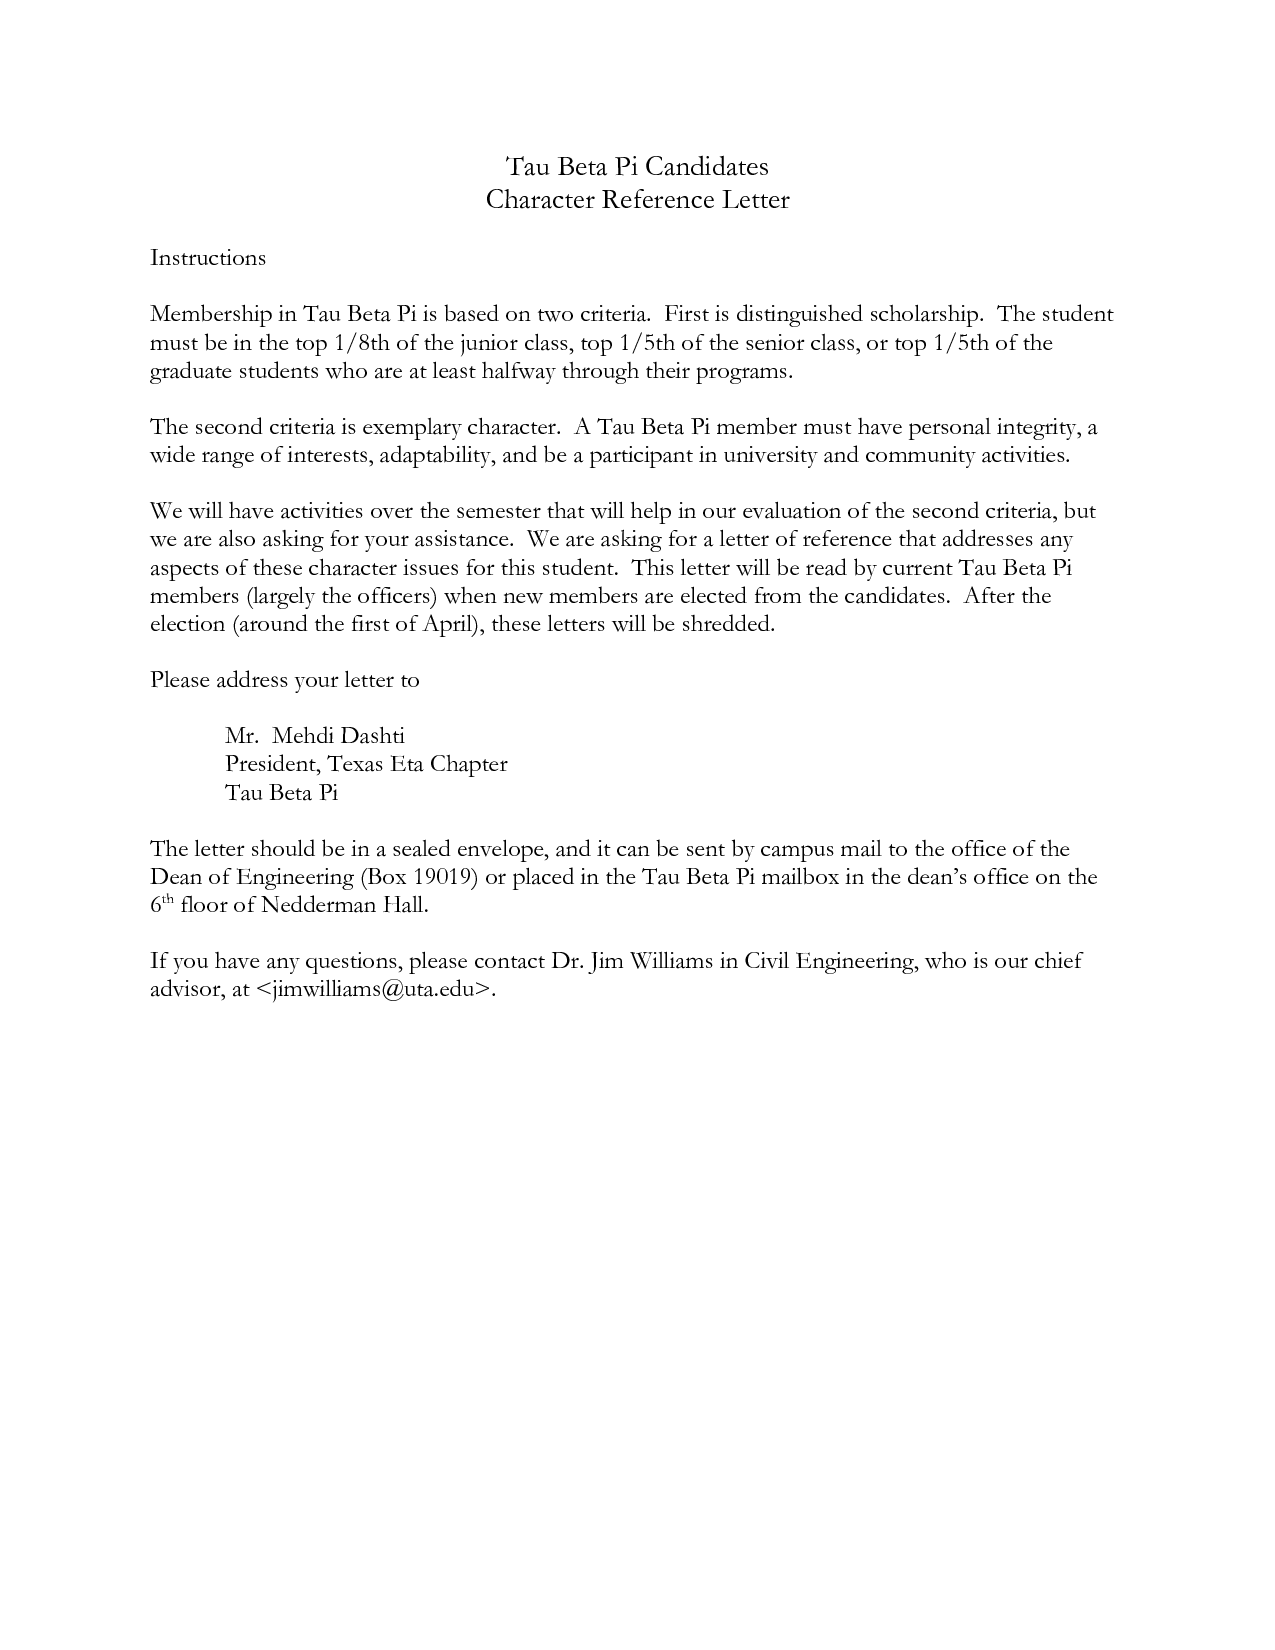 Sample Character Reference Letter Examples of Good Character Statements